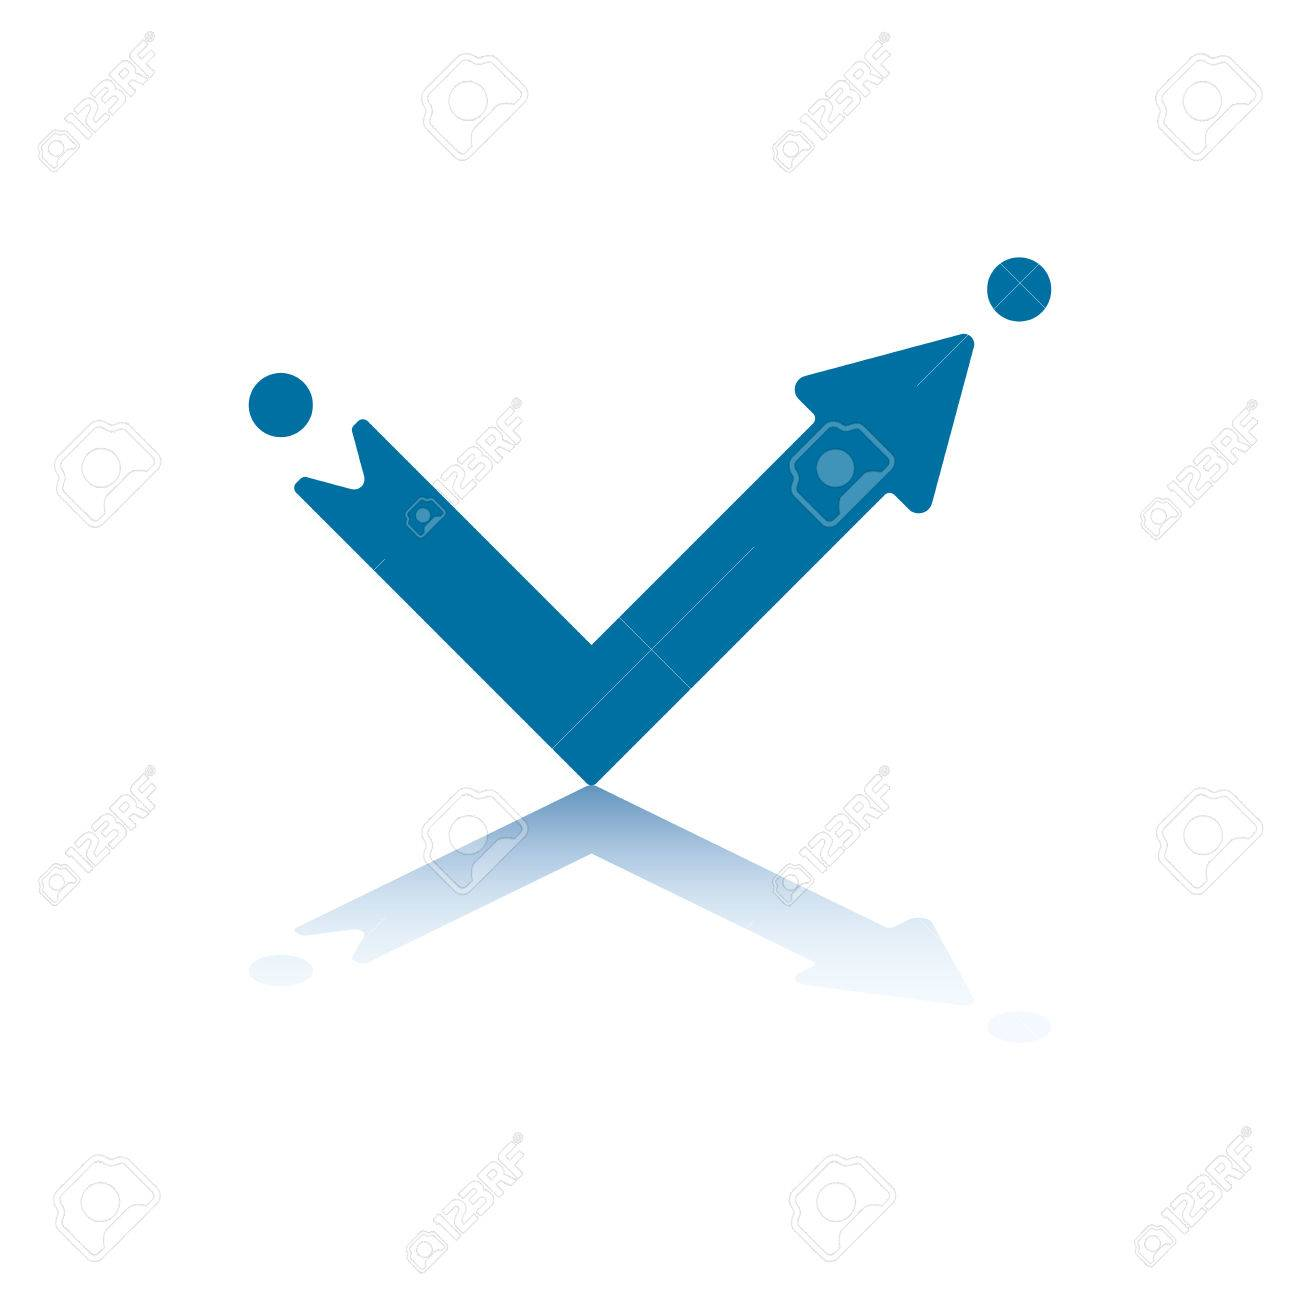 Arrow Pointing East Right Angle Arrow Pointing